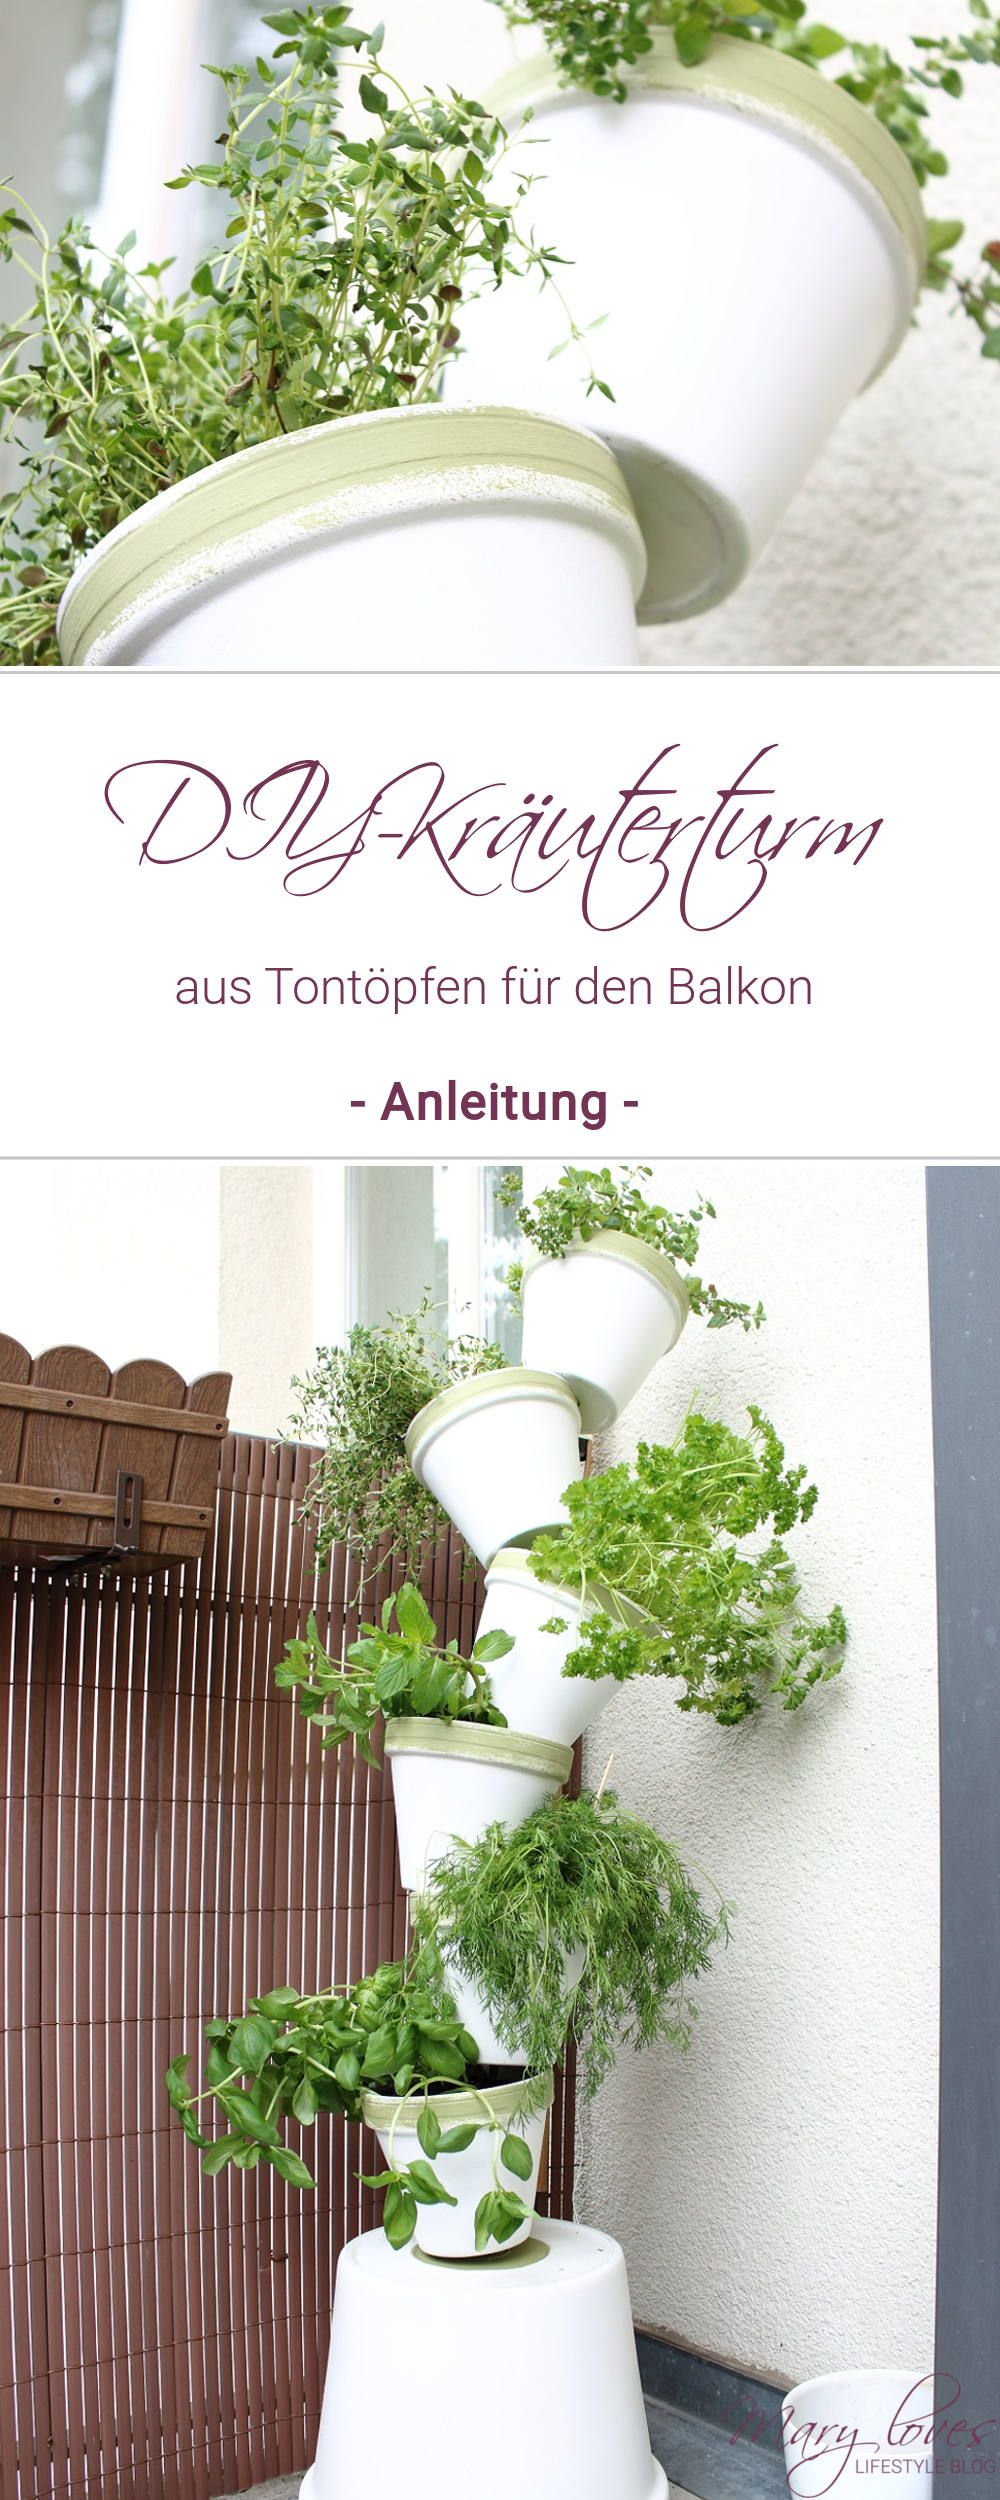 diy kr uterturm aus tont pfen f r den balkon pinterest tont pfe bemalen kr uterturm und. Black Bedroom Furniture Sets. Home Design Ideas